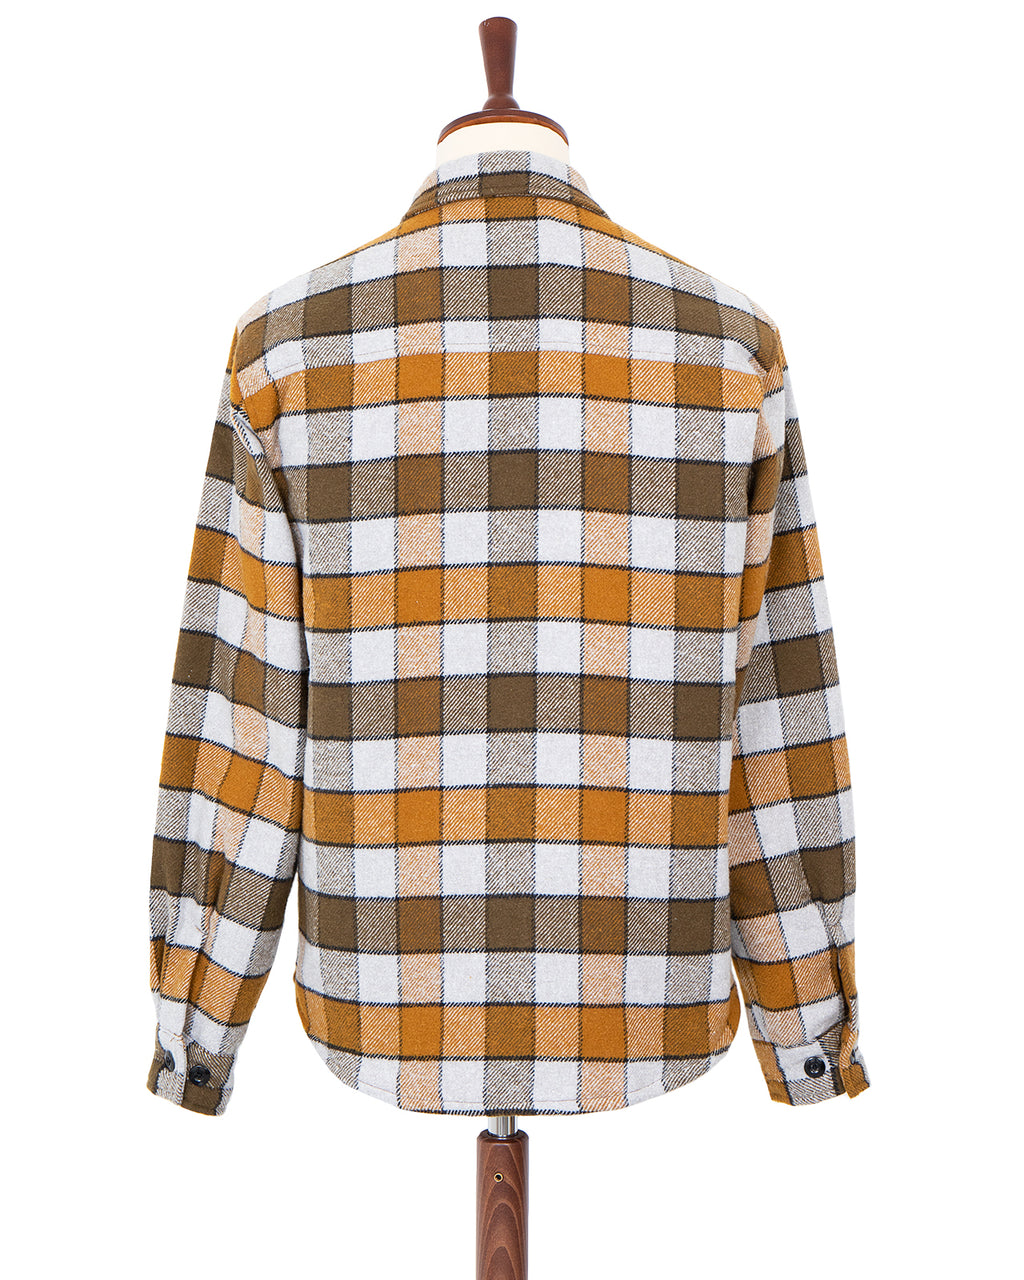 Weirdo Quilting Check Shirt, Yellow